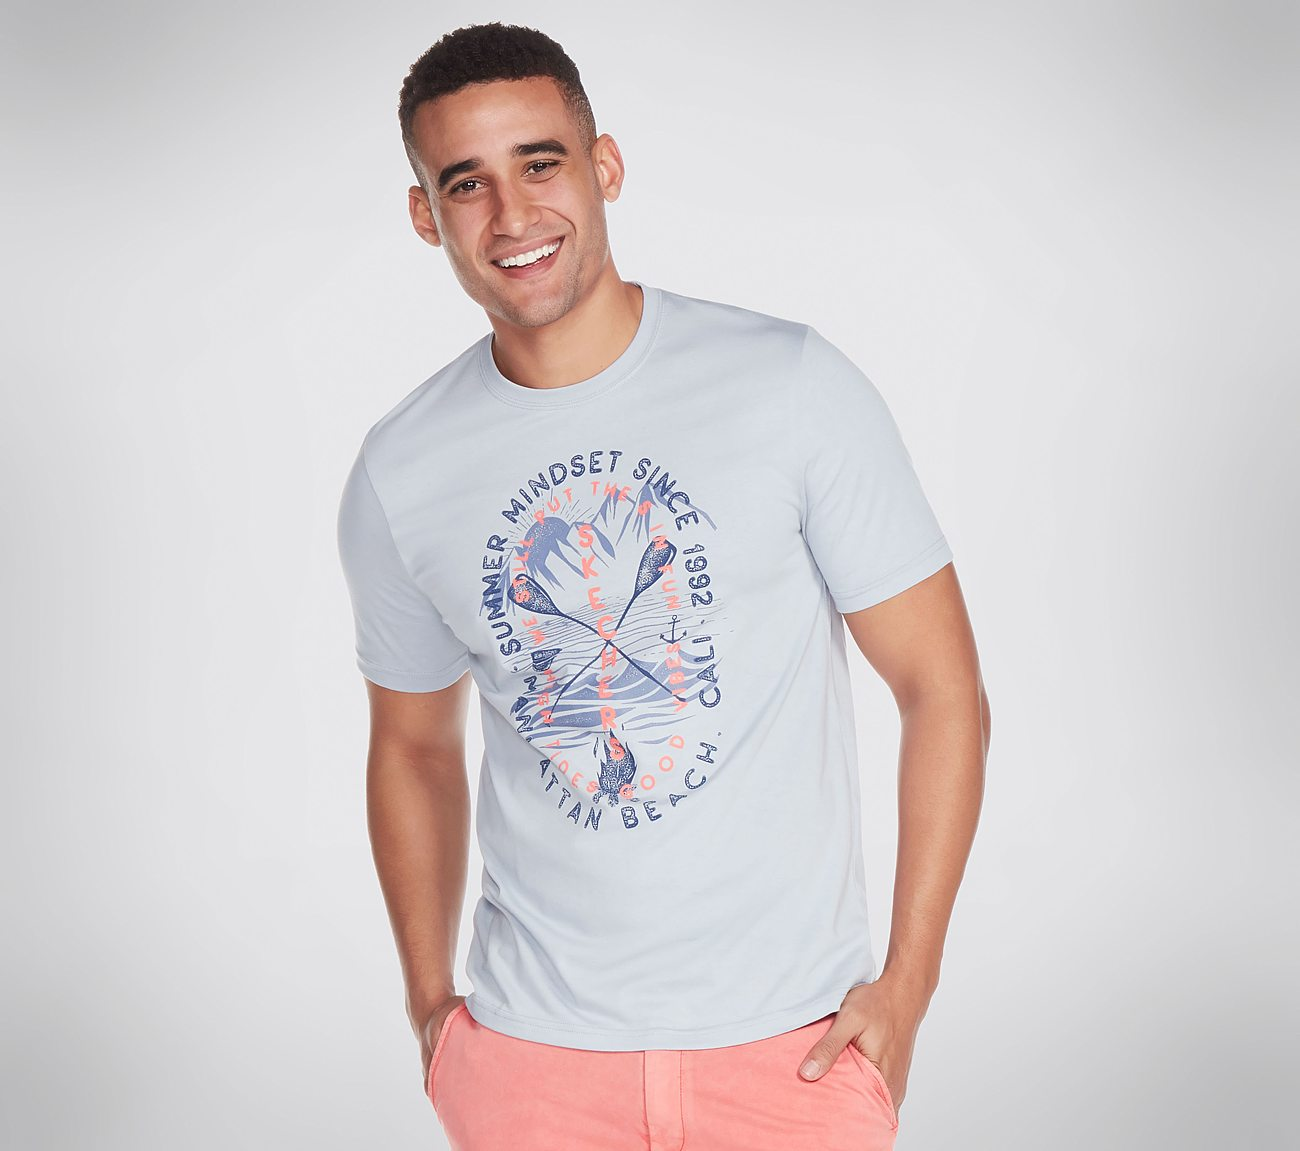 Skechers Apparel Mindset Tee Shirt